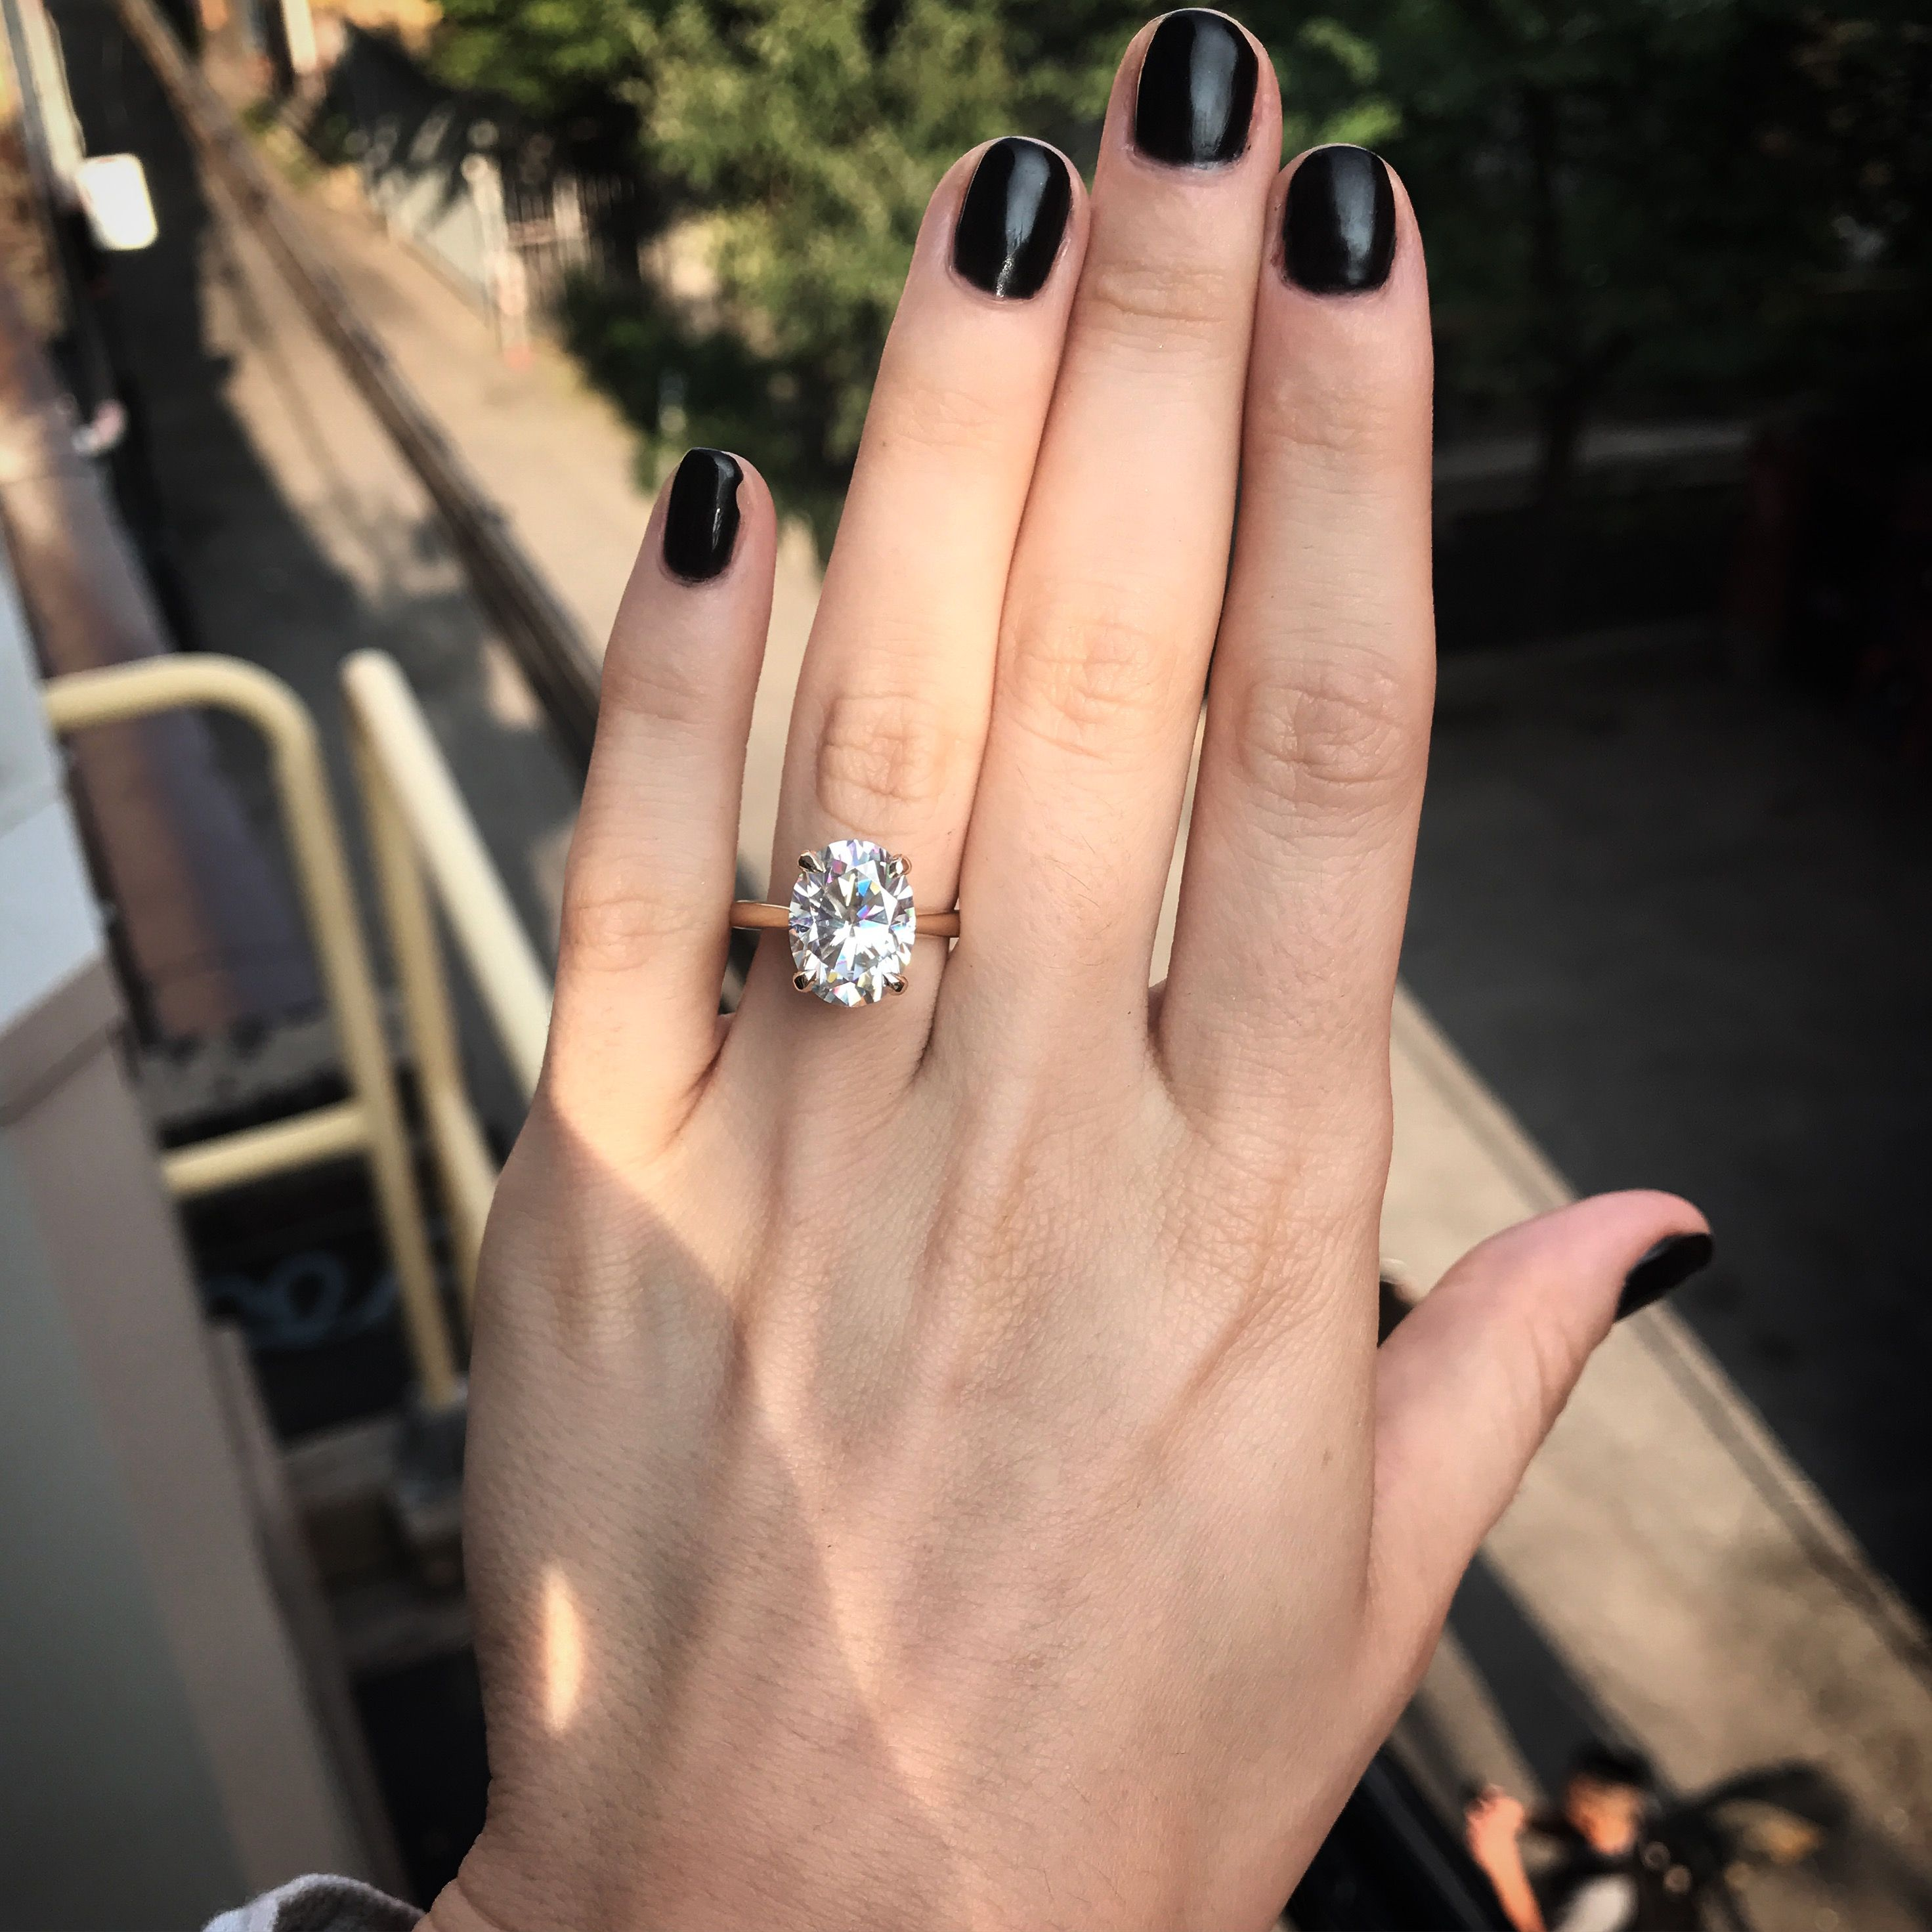 Large 6 Carat Equivalent Moissanite Solitaire Engagement Ring In